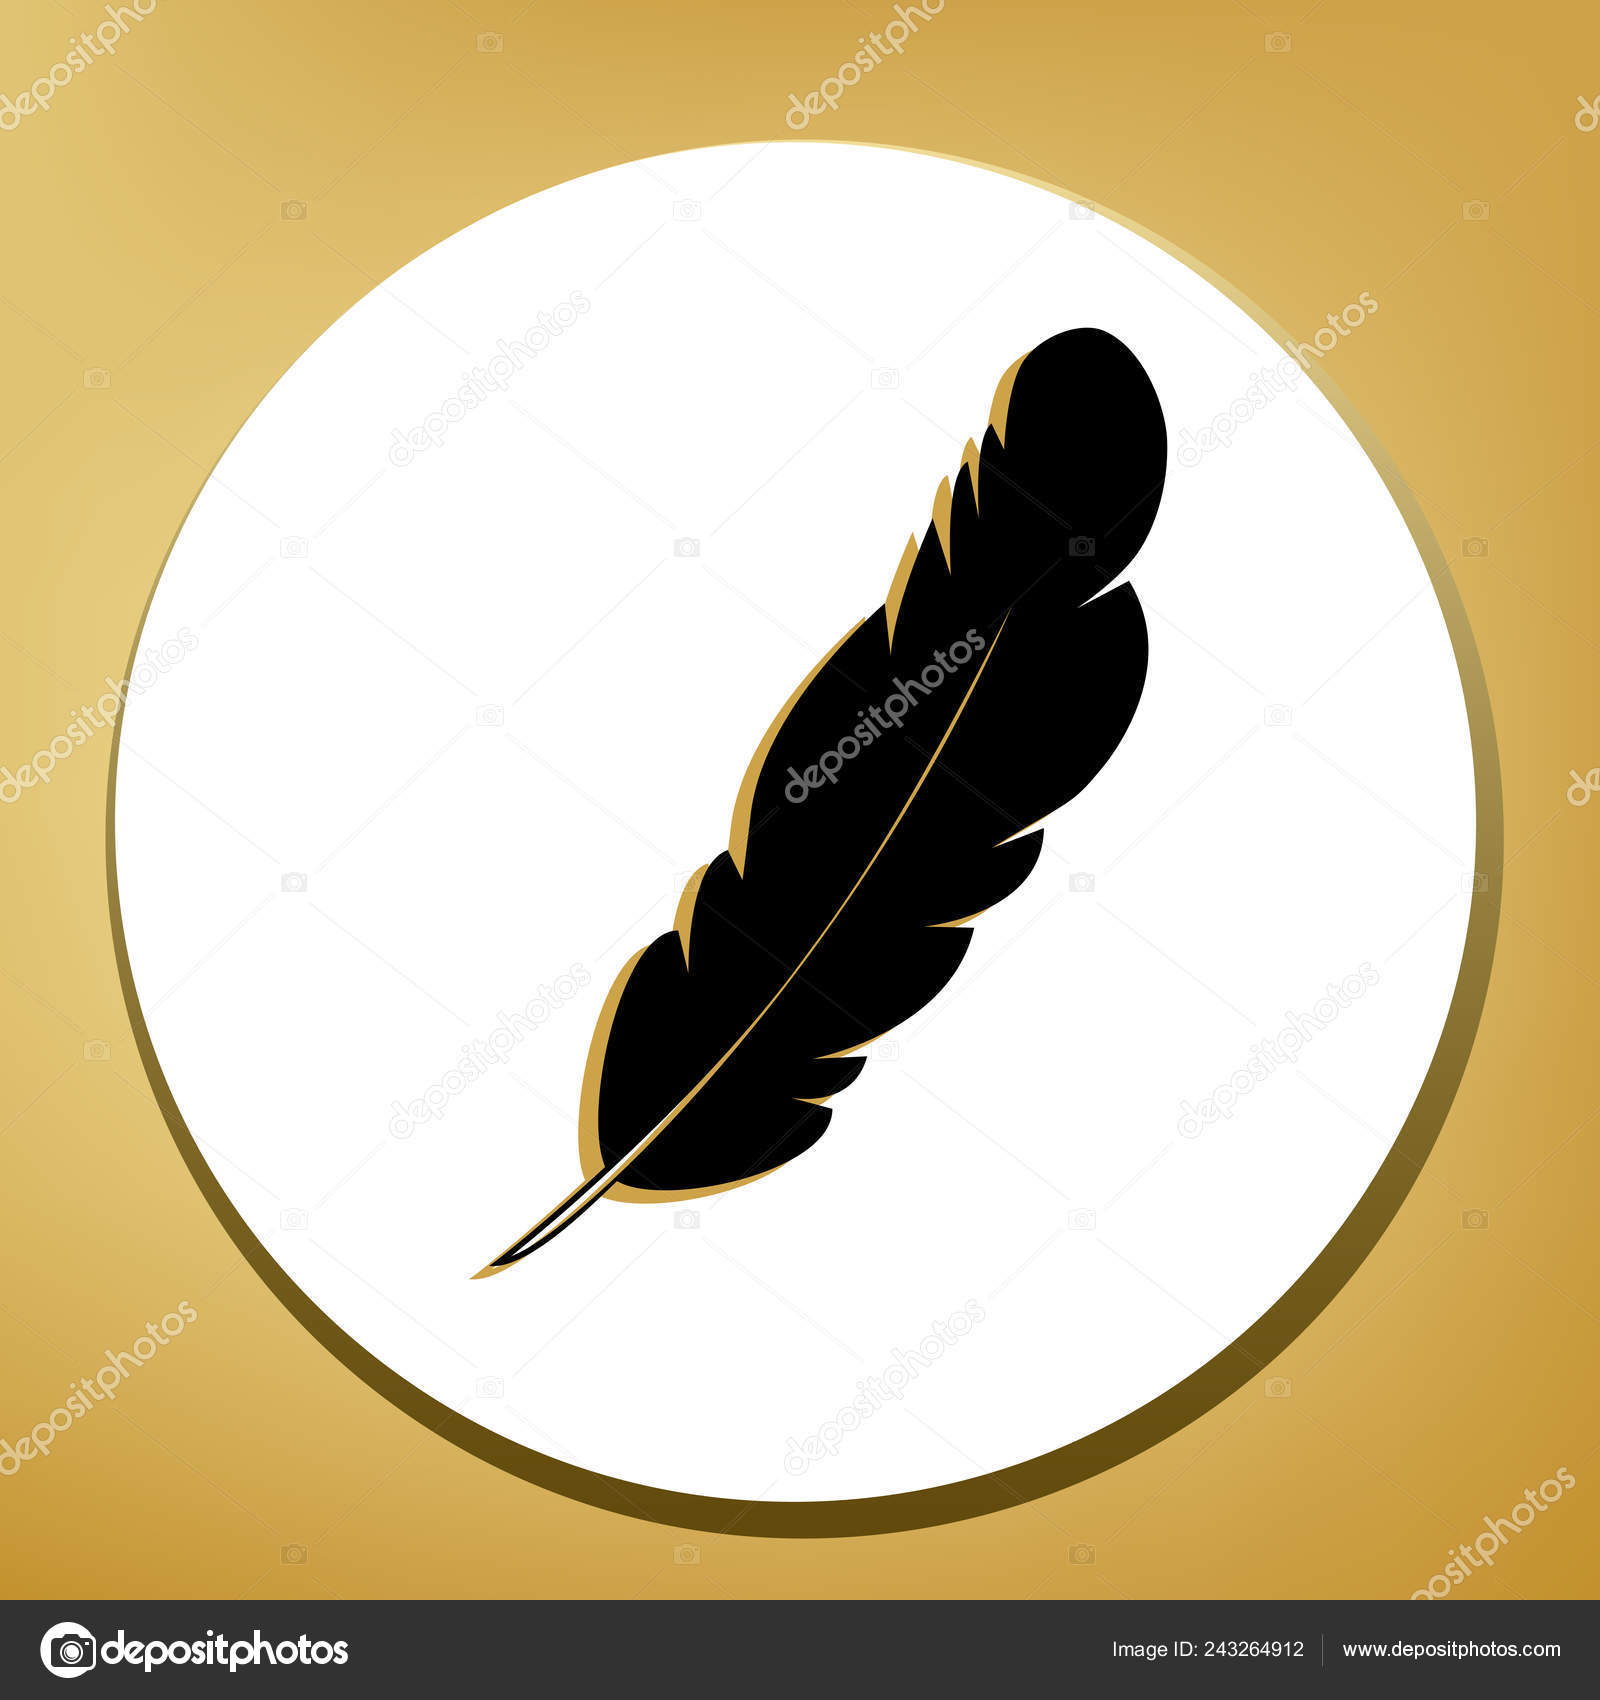 da4765946 Feather sign illustration. Vector. Black icon with light brown shadow in  white circle with shaped ring at golden background.